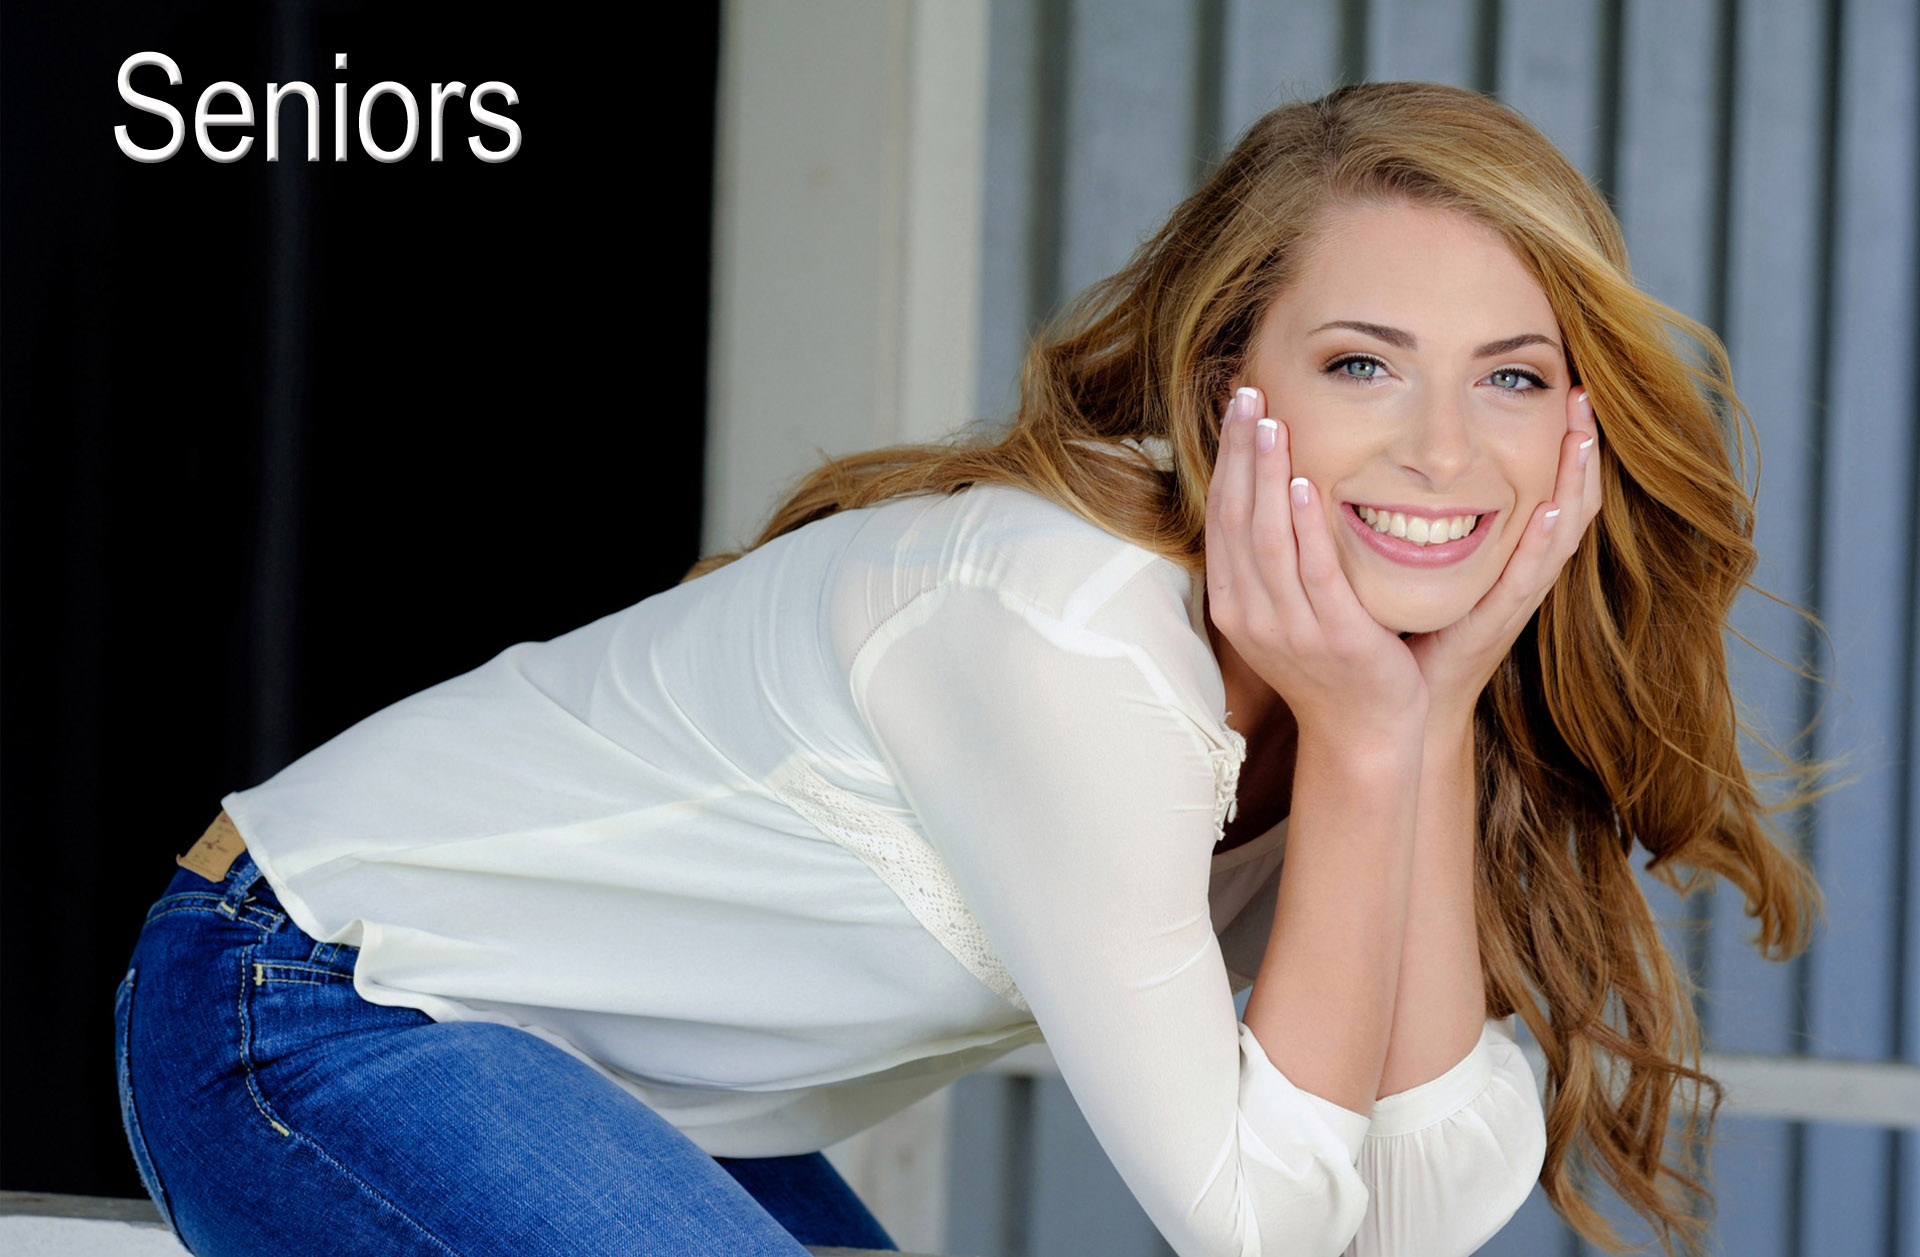 Best Troy, Michigan senior photographer photographs senior photos as buddy shoots or with their boyfriend or girlfriend as a romeo and juliet shoot. Taking senior photos with a friend can make the experience more relaxing. title=